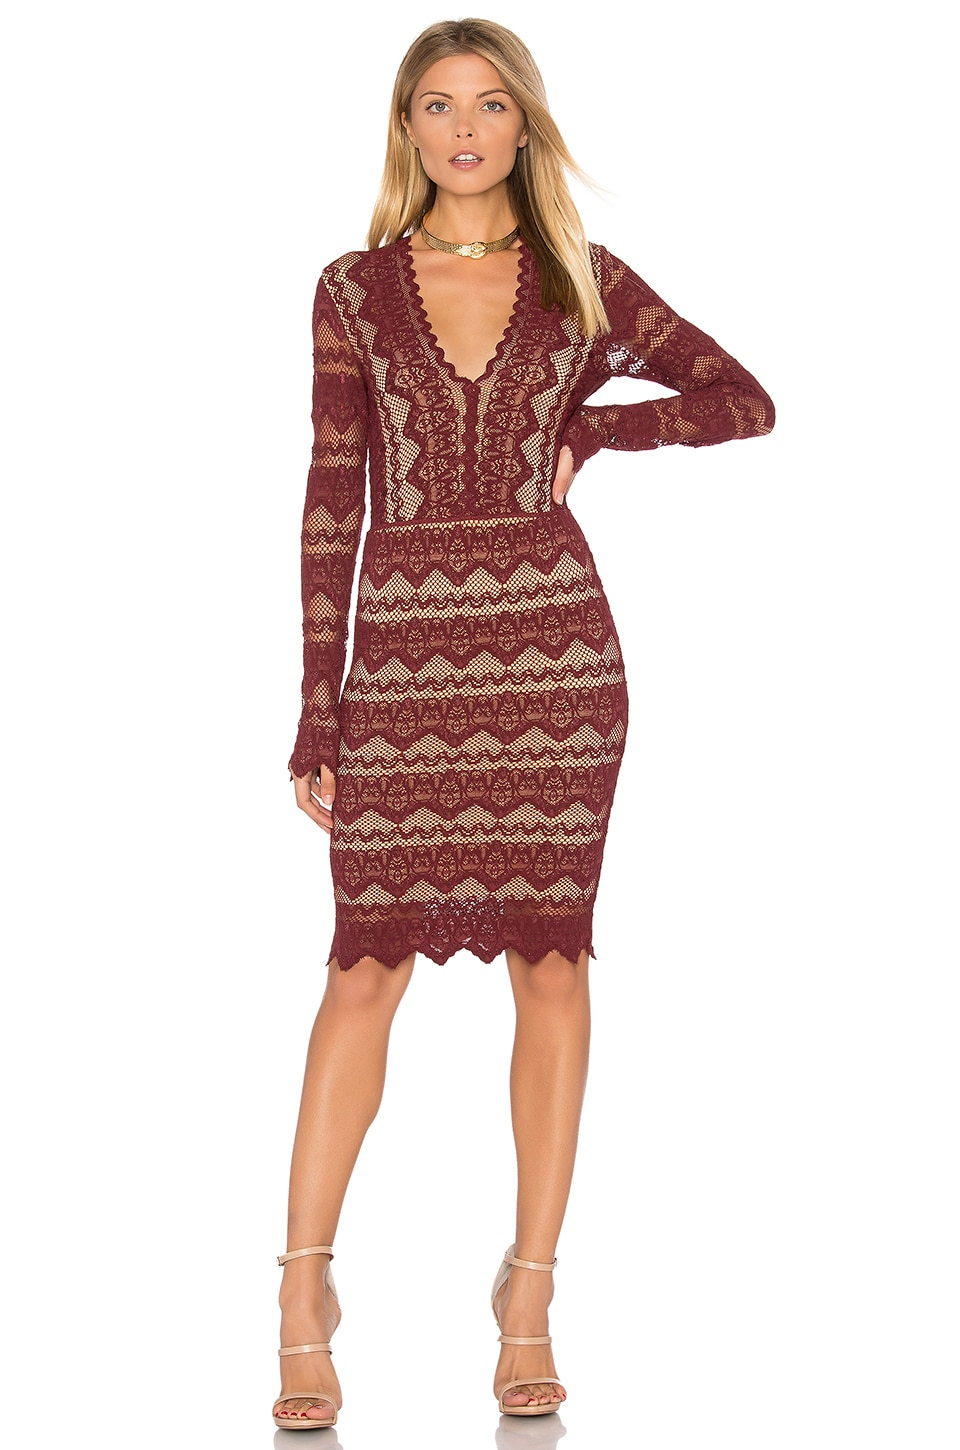 Sierra Lace Deep V Dress by Nightcap